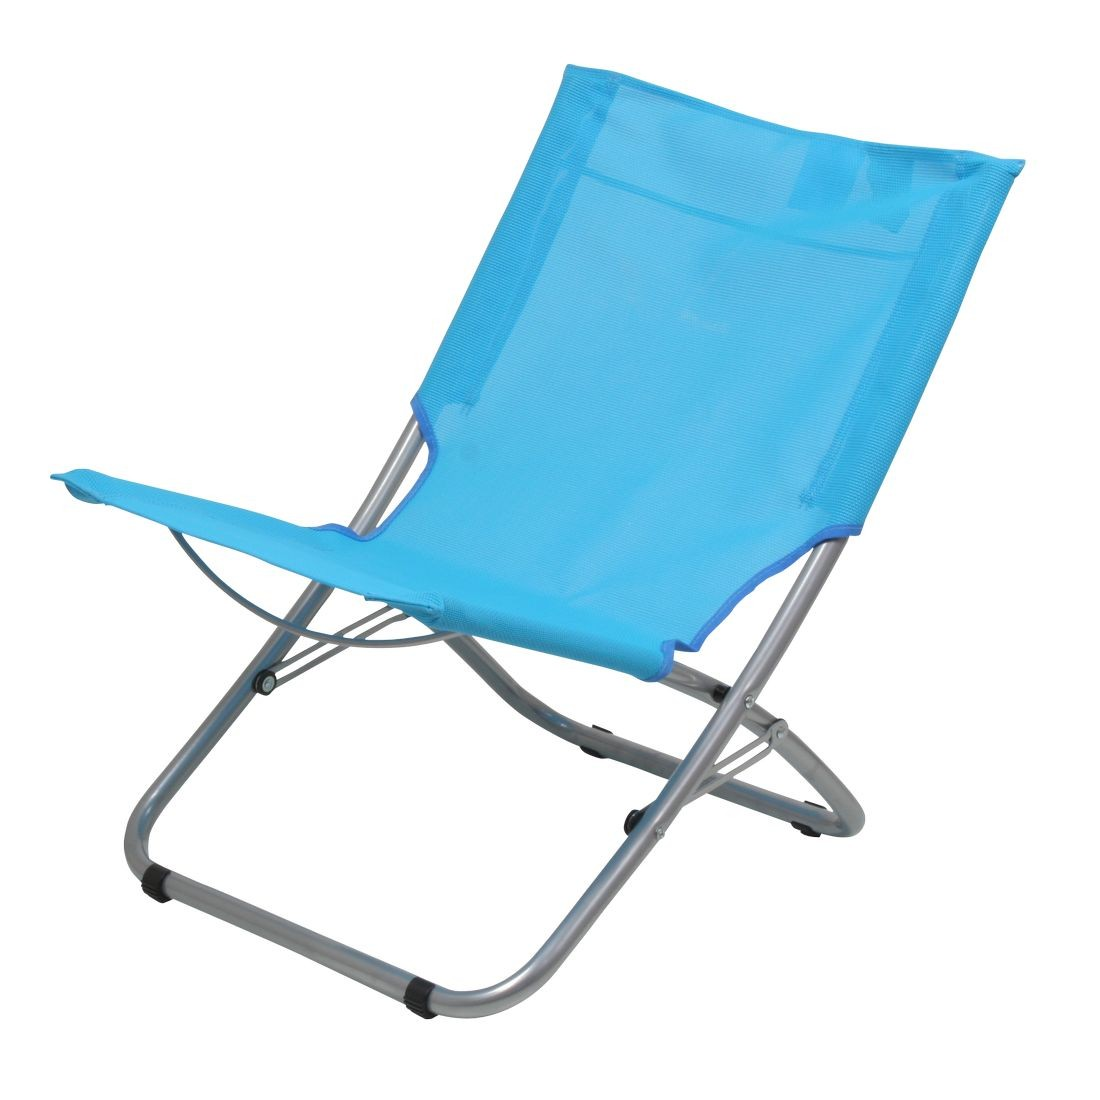 10t sunchair si ge de camping mobile si ge de plage pliant dossier en tissu bleu clair. Black Bedroom Furniture Sets. Home Design Ideas